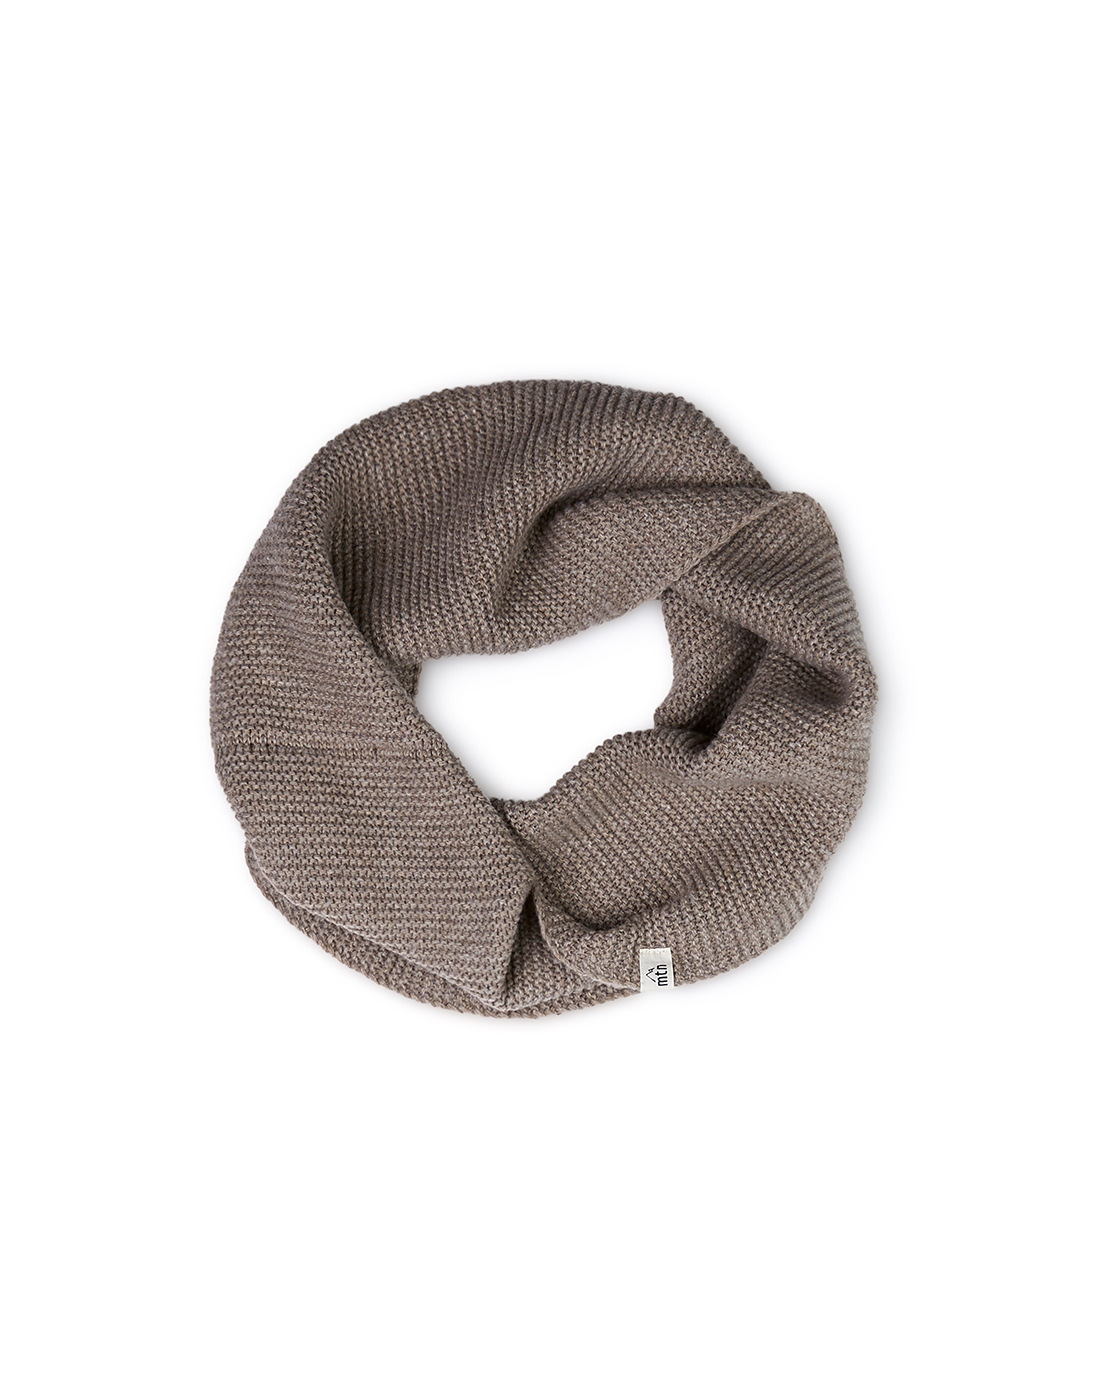 loop-scarf-taupe-recycled-cashmere-matona